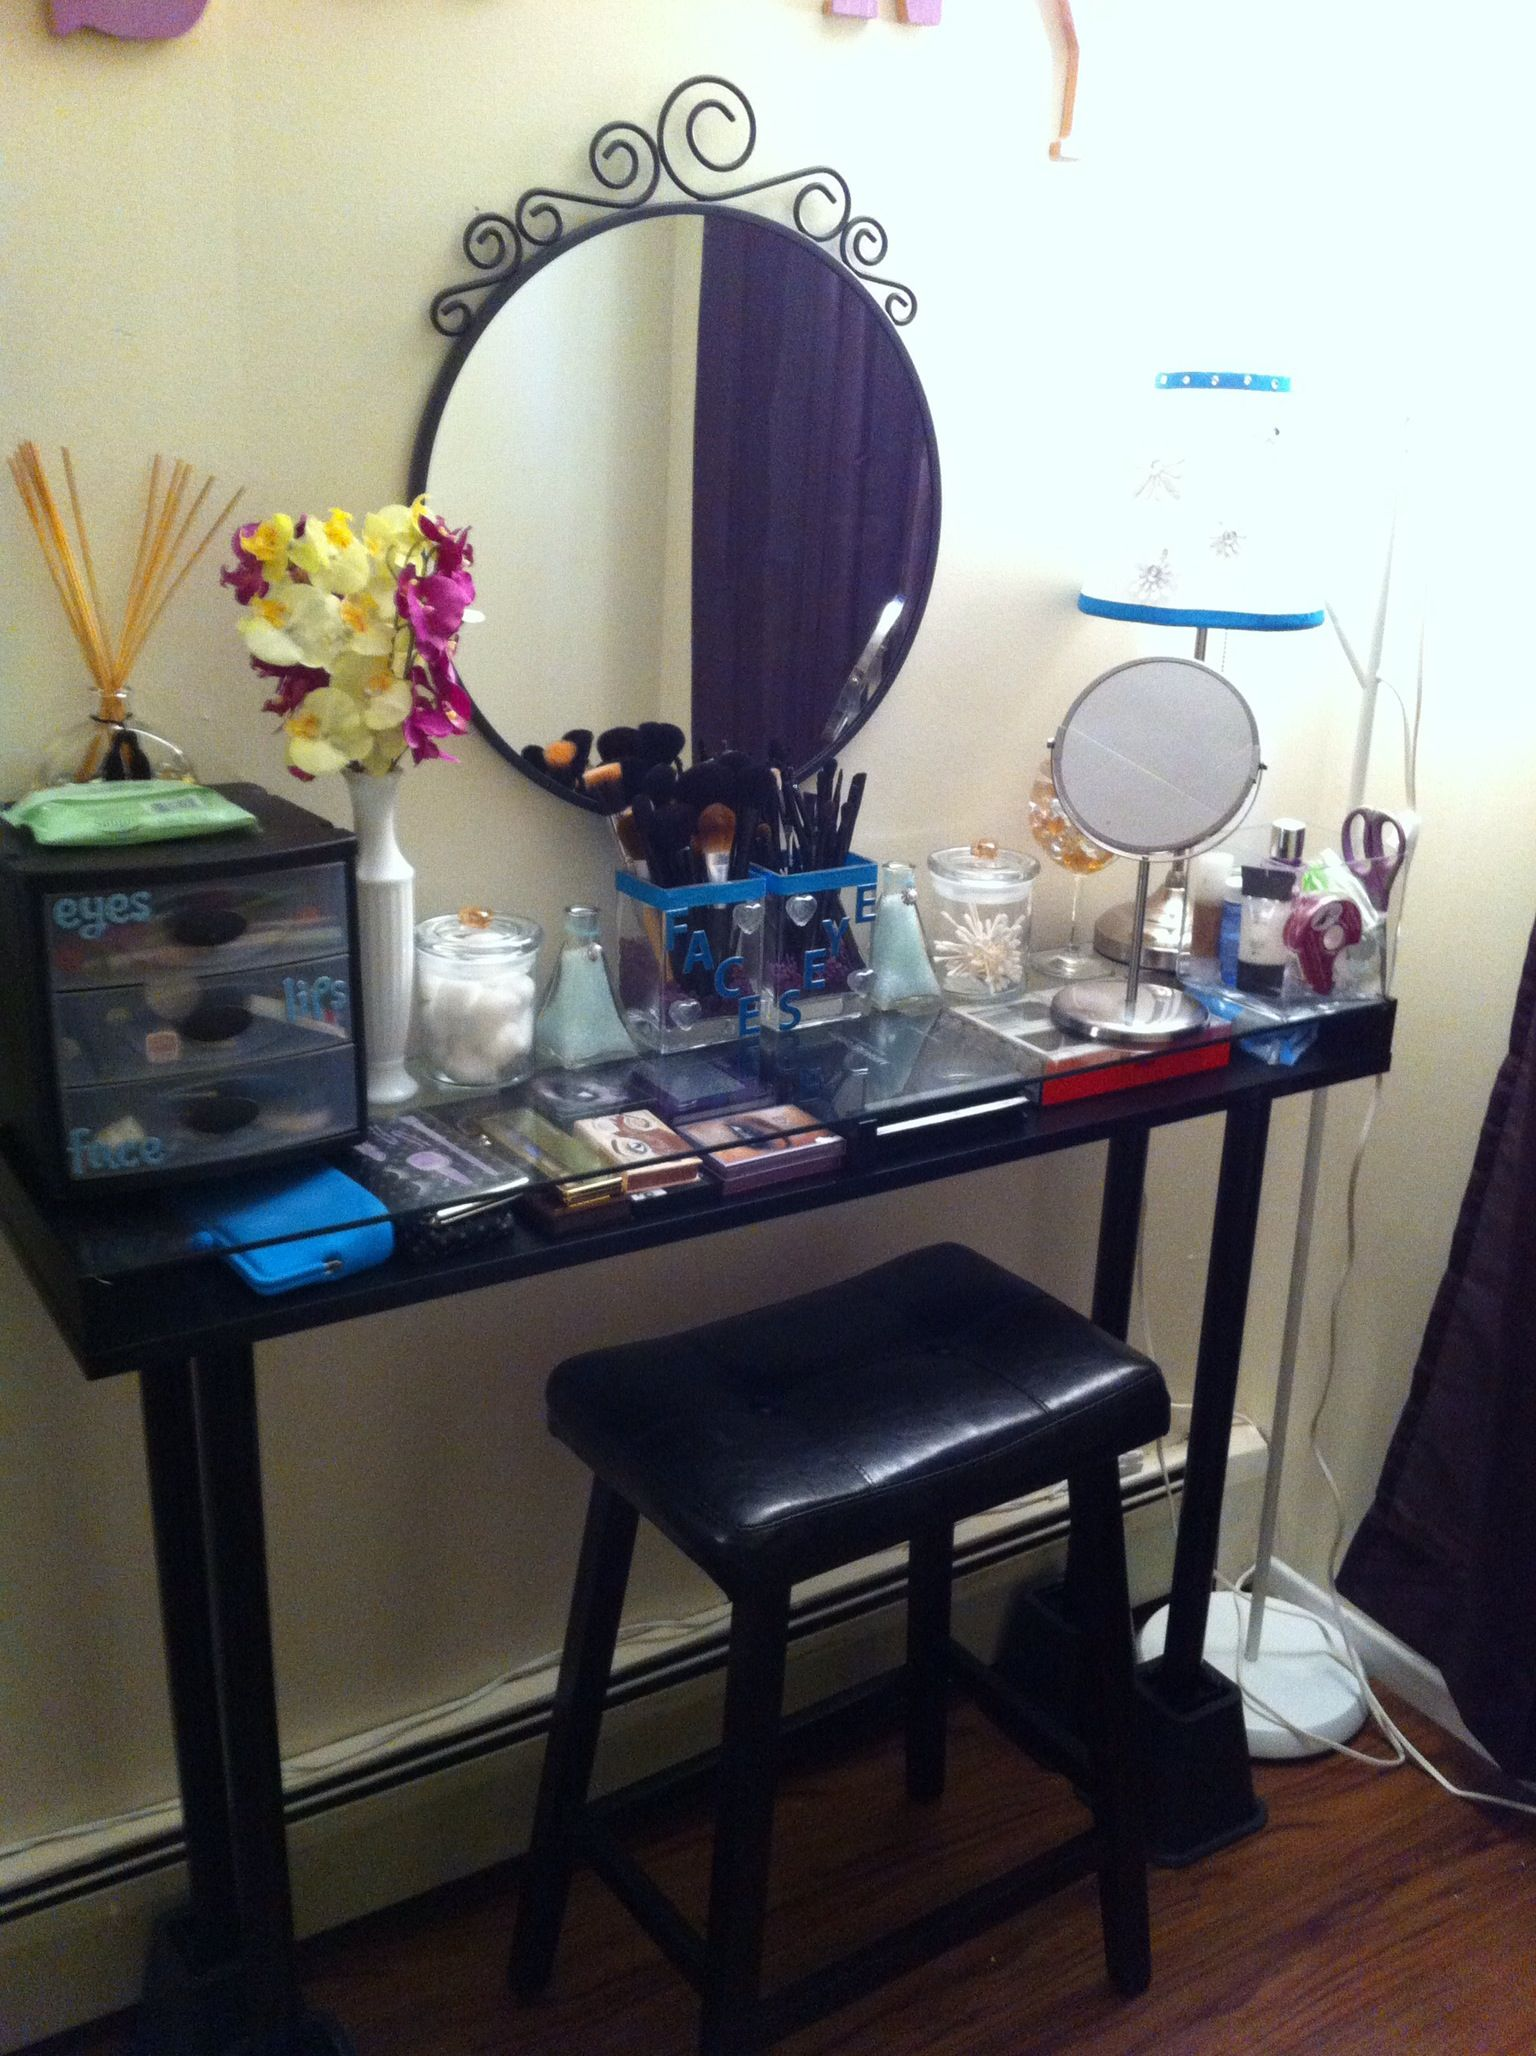 When in doubt make your own vanity table 3 home decor when in doubt make your own vanity table 3 geotapseo Gallery